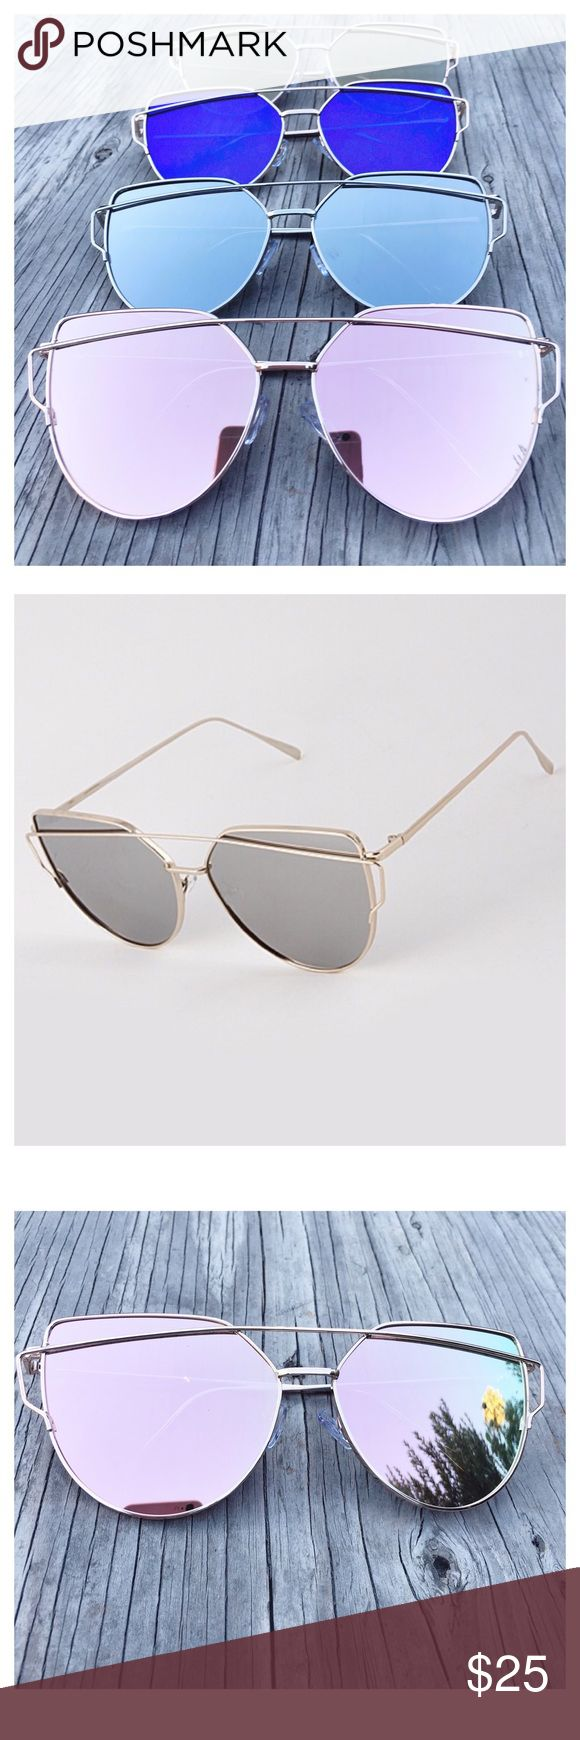 Top Quality! Mirrored Sunglasses, Cat Eye Sunglass Sale! Cat Eye Aviator Sunglasses. This listing is for a pair of Cat Eye aviator sunshades. Retro. Wire sunglasses. Trending sunglasses. Available in: Rose Gold, Gold, Silver, and Blue. UV protection. Top quality! Brand new! SOLD OUT OF ROSE GOLD. Accessories Glasses